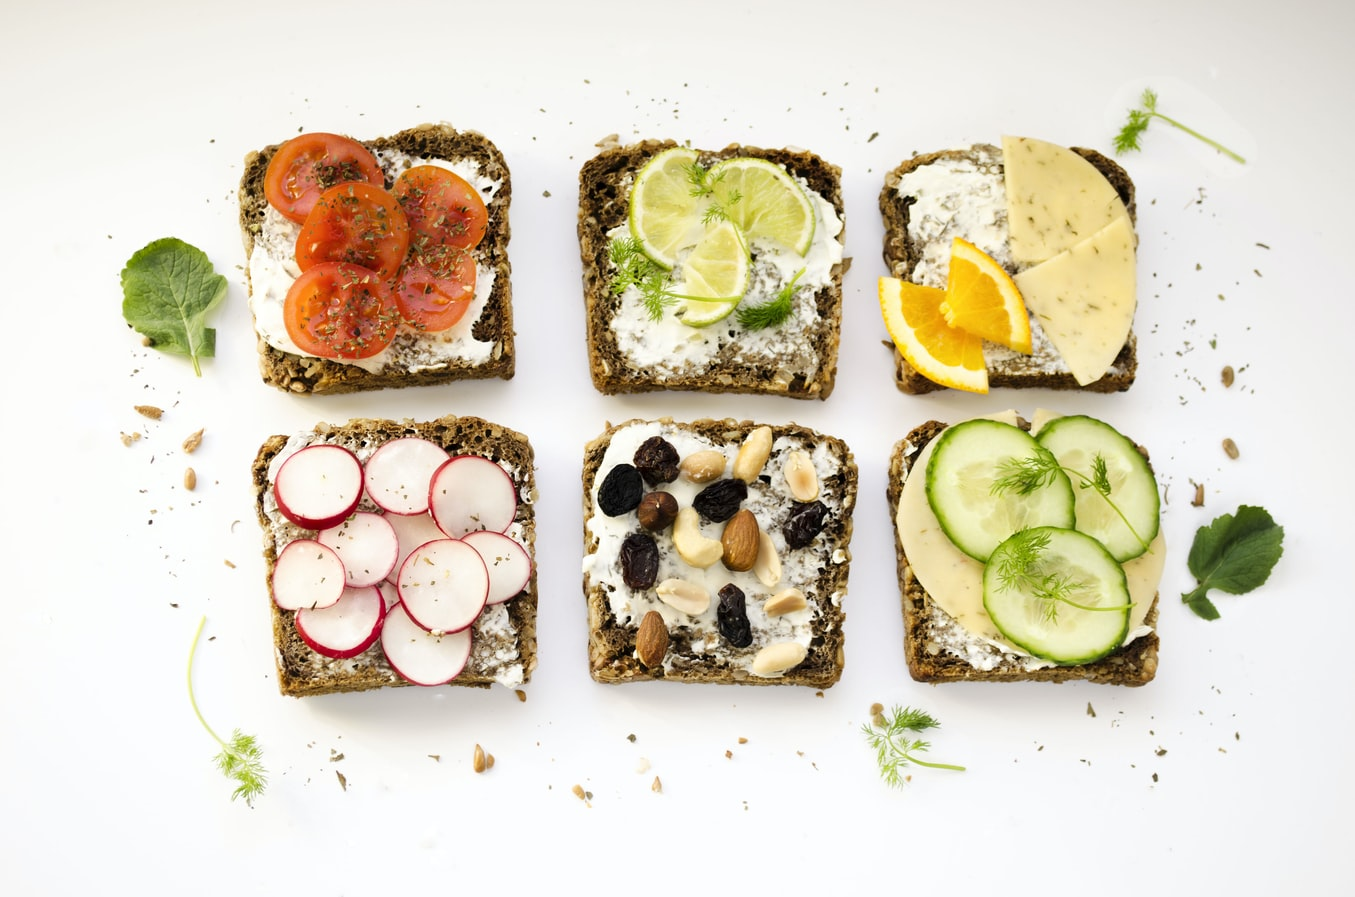 Healthy Sandwiches | Goodwill Car Donations